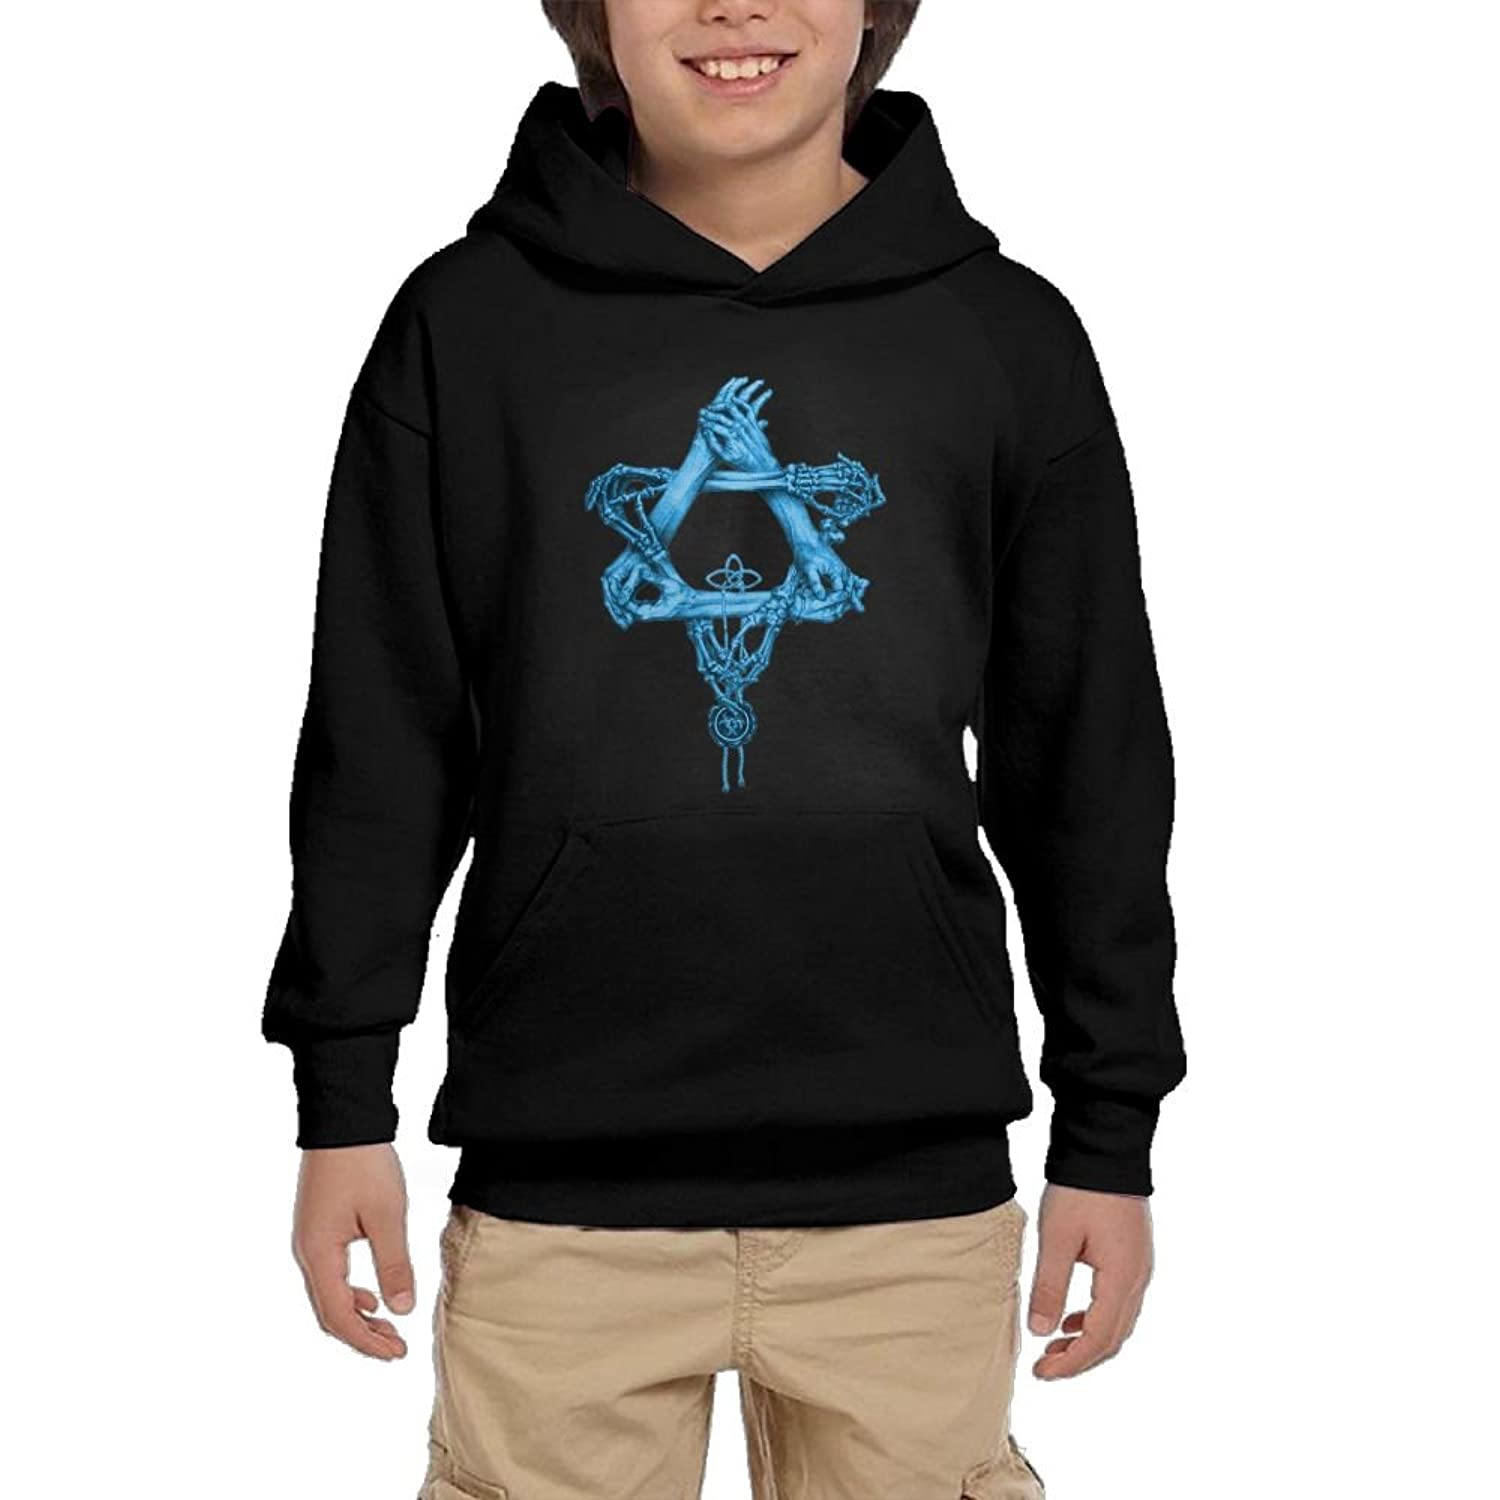 cheap Star Hand Boy Girls Long Sleeve Hoodies Athletic Hooded Sweatshirts With Pocket for cheap